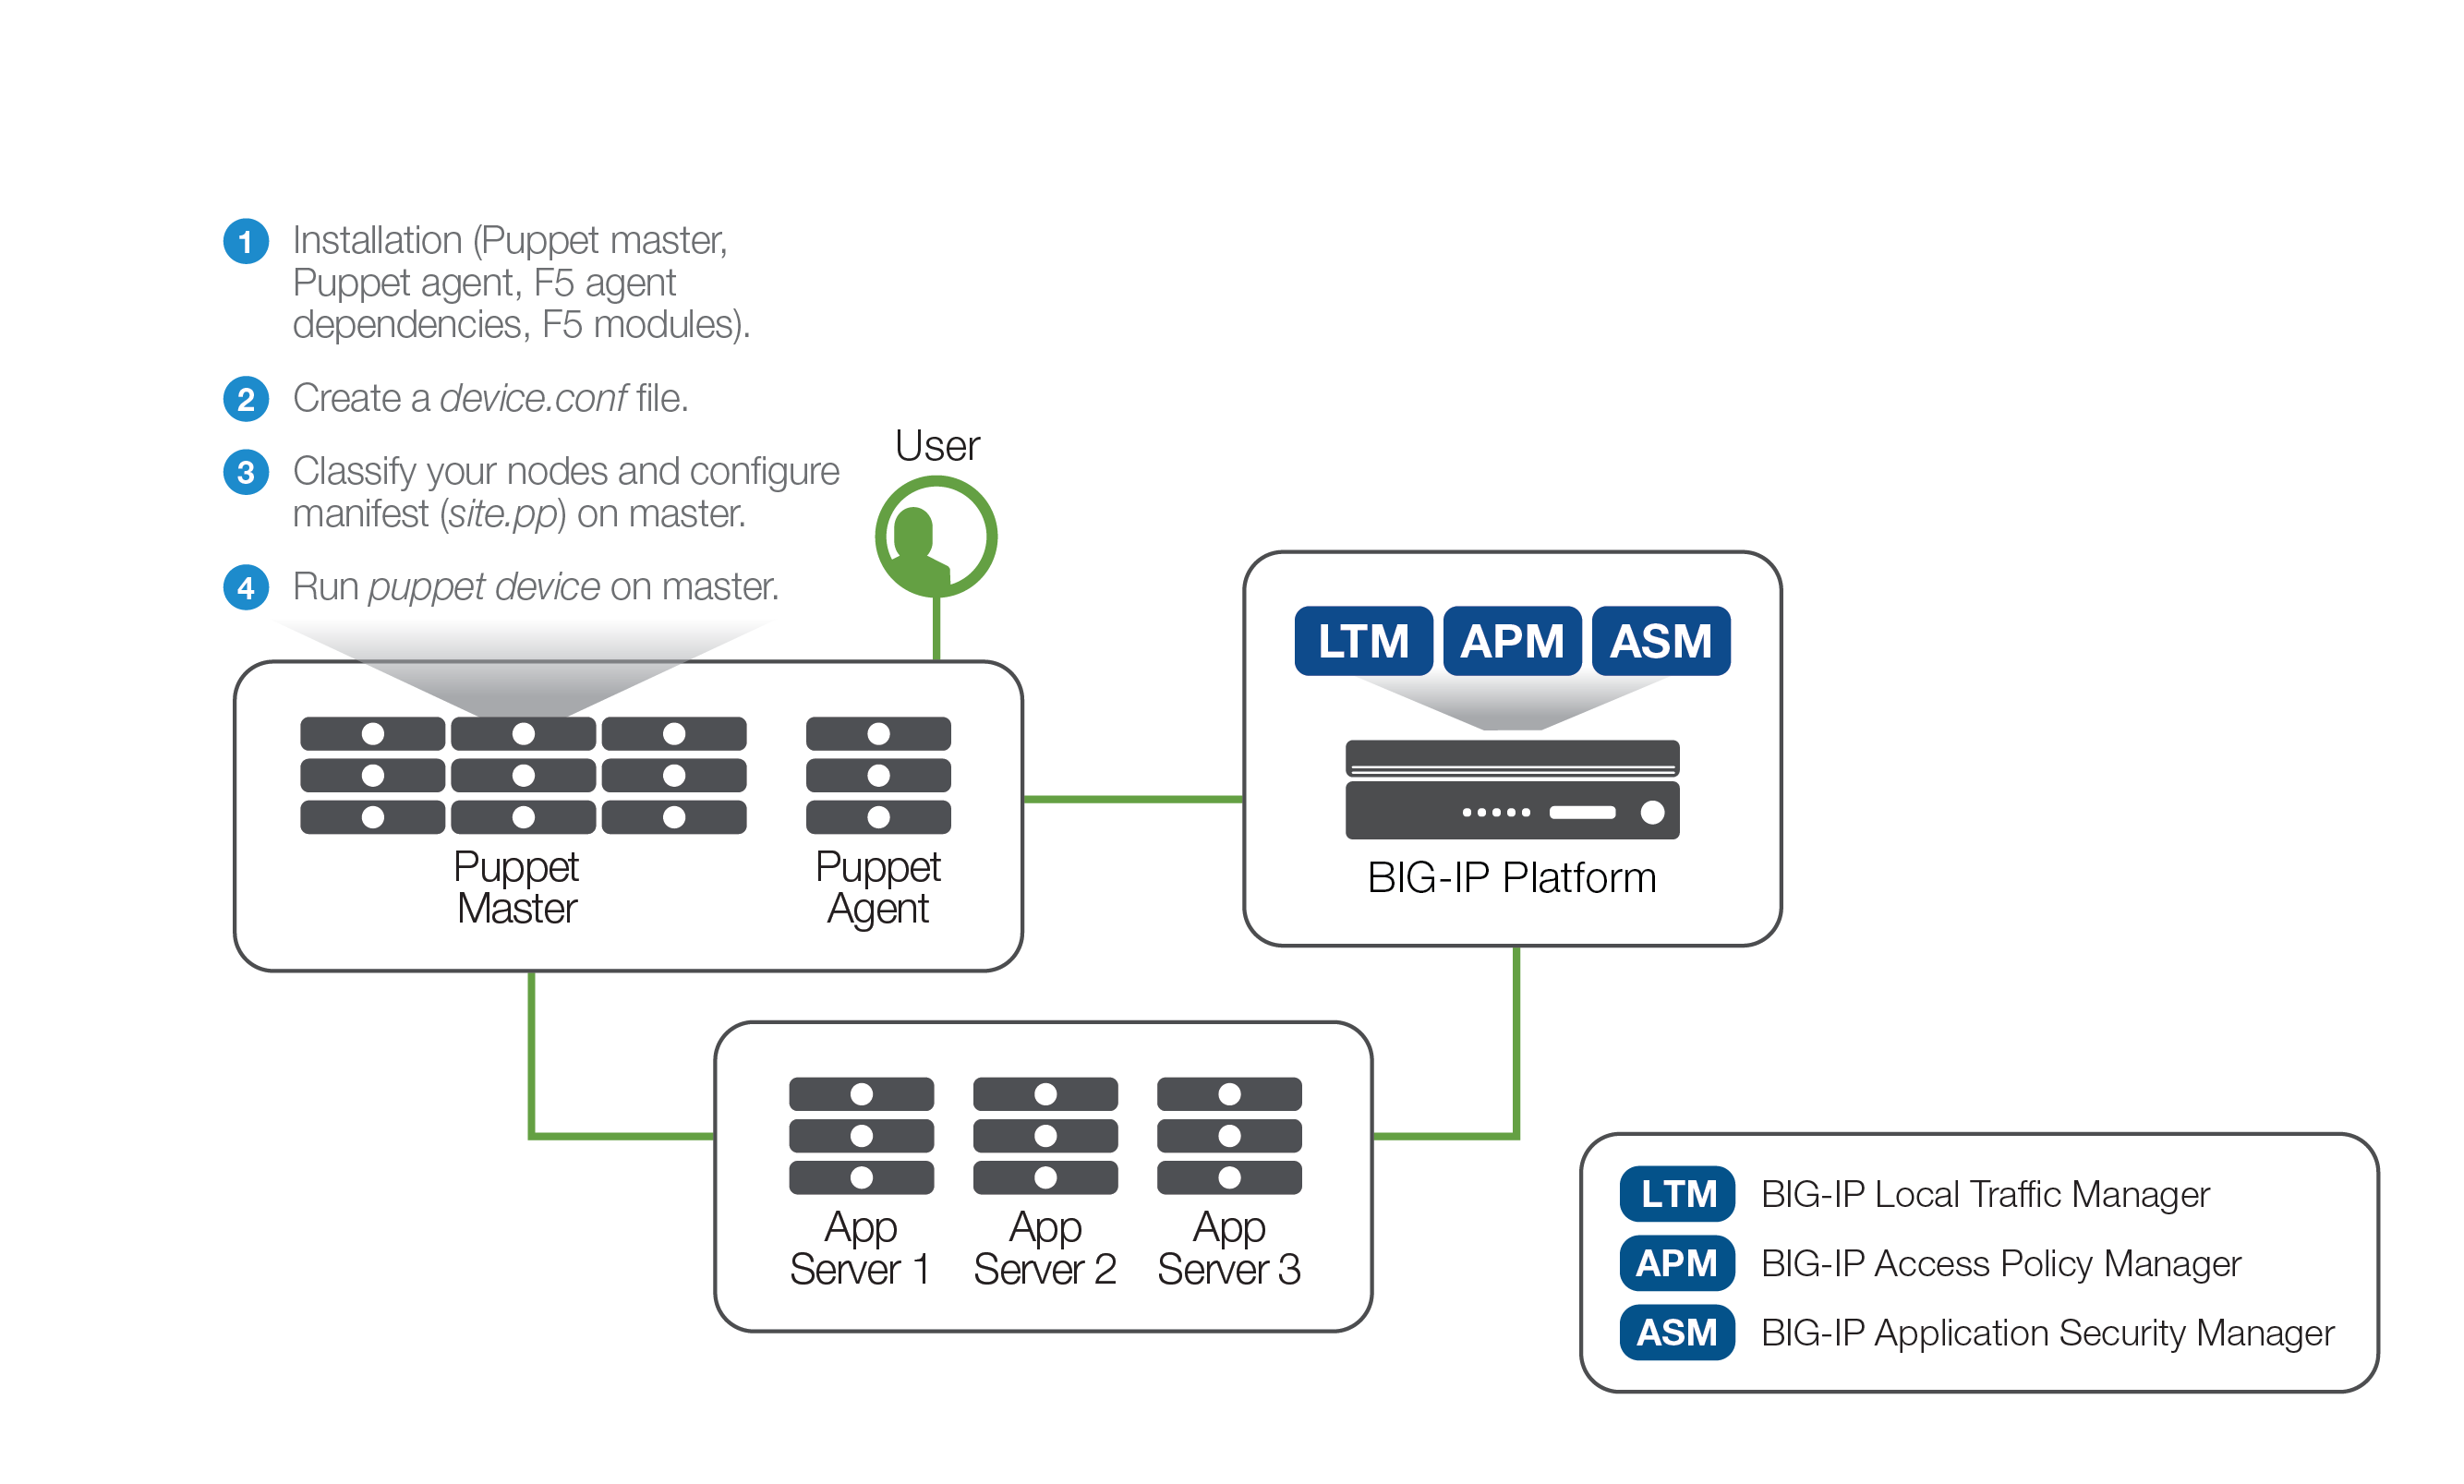 Automating Application Deployments with F5 BIG-IP and Puppet